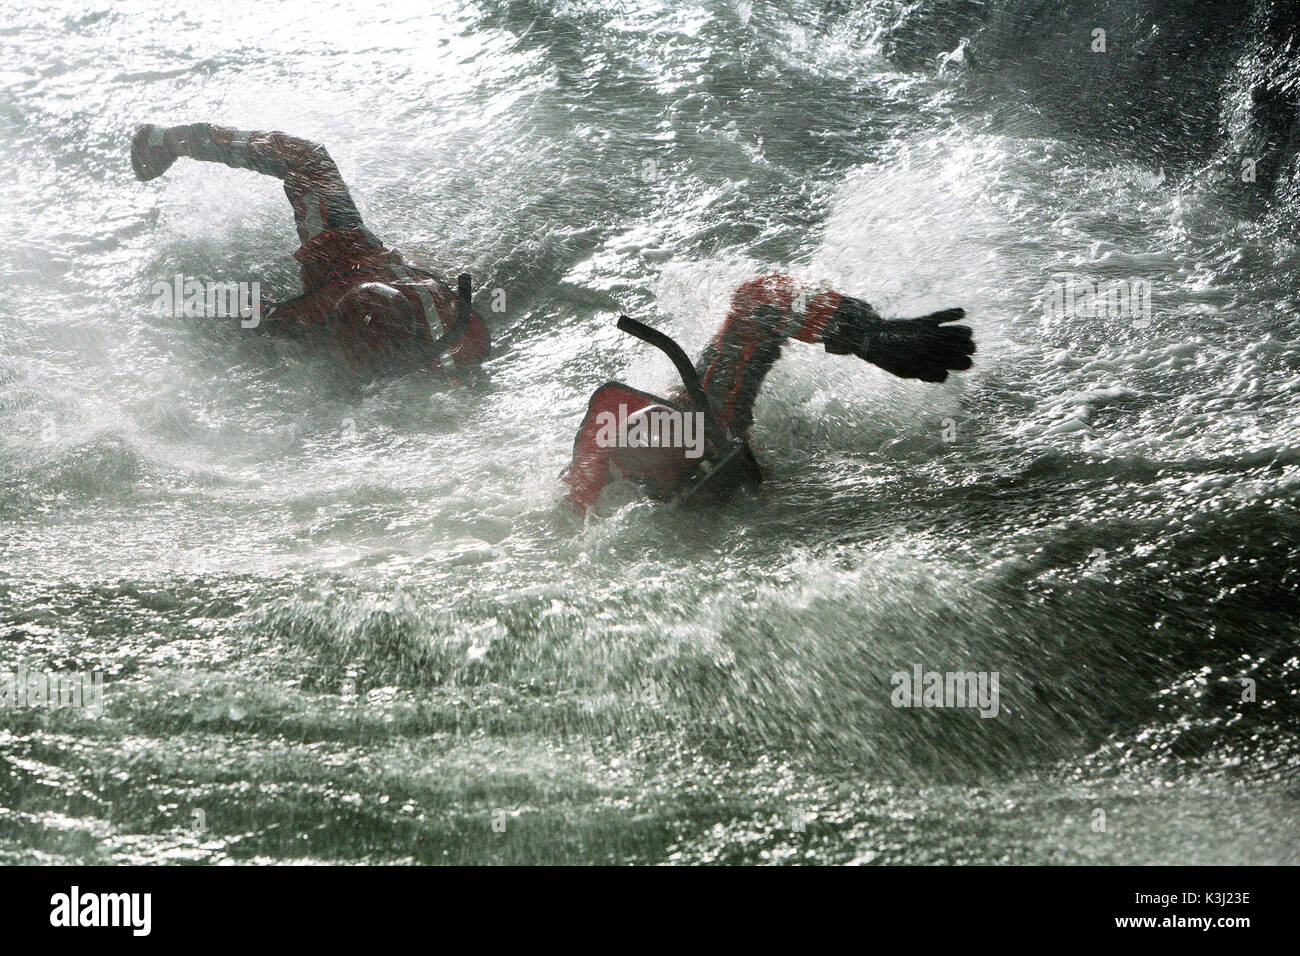 Rescue Swimmer Stock Photos Amp Rescue Swimmer Stock Images